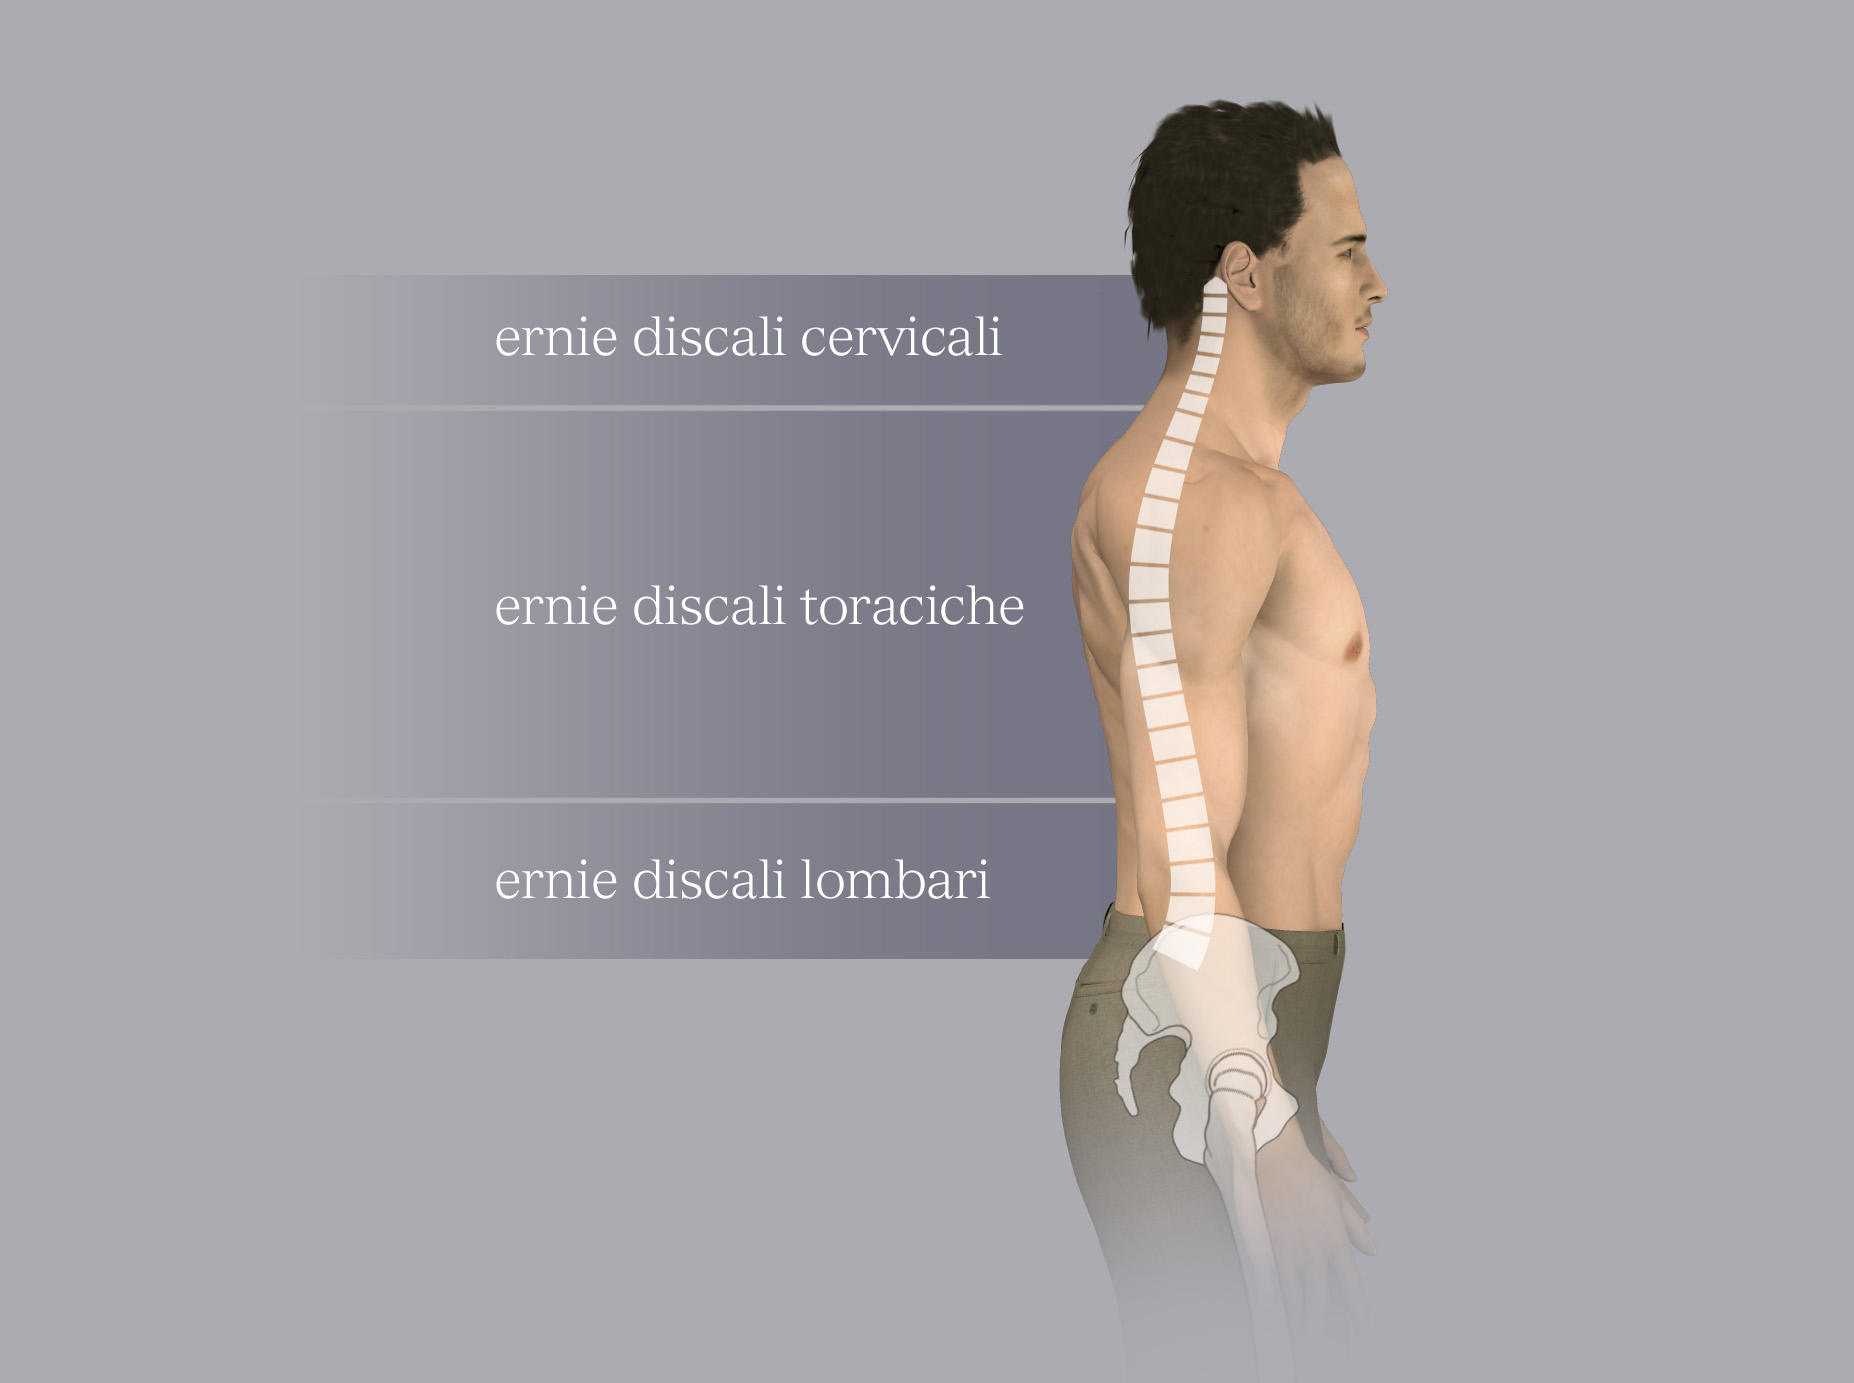 Classification of the disc herniations based on localization: cervical, thoracic, lumbar